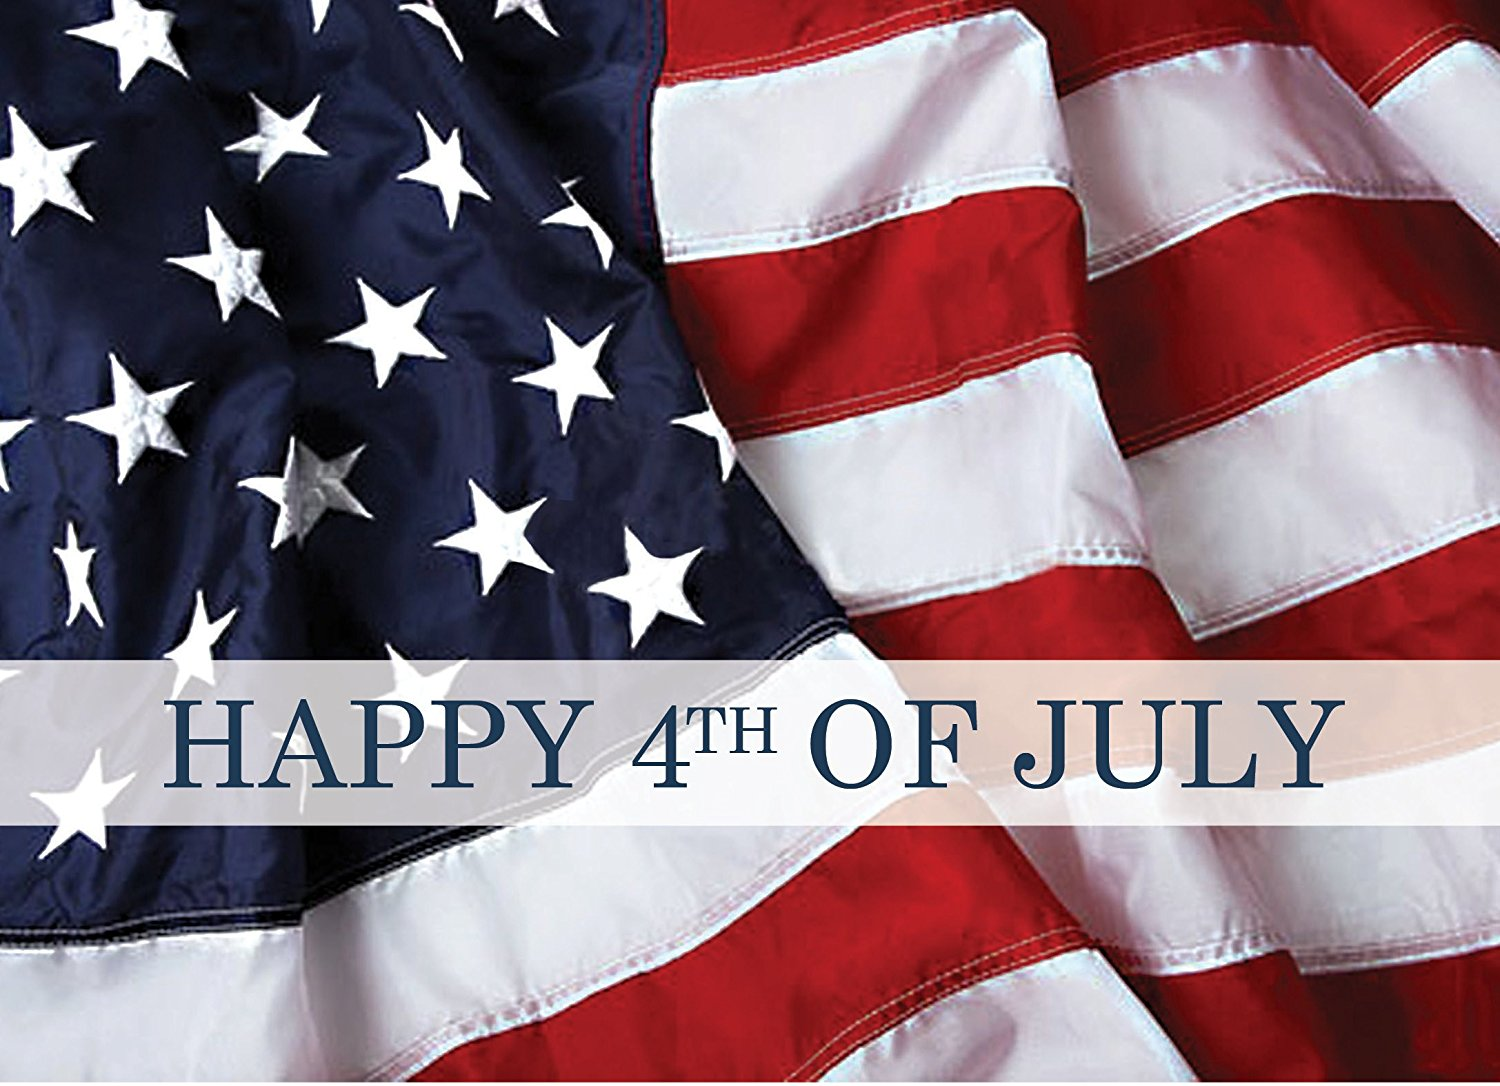 July 4th Greeting Cards - JF1504. Greeting Cards with an Image of the American Flag. Box Set has 25 Greeting Cards and 26 Red Colored Envelopes.